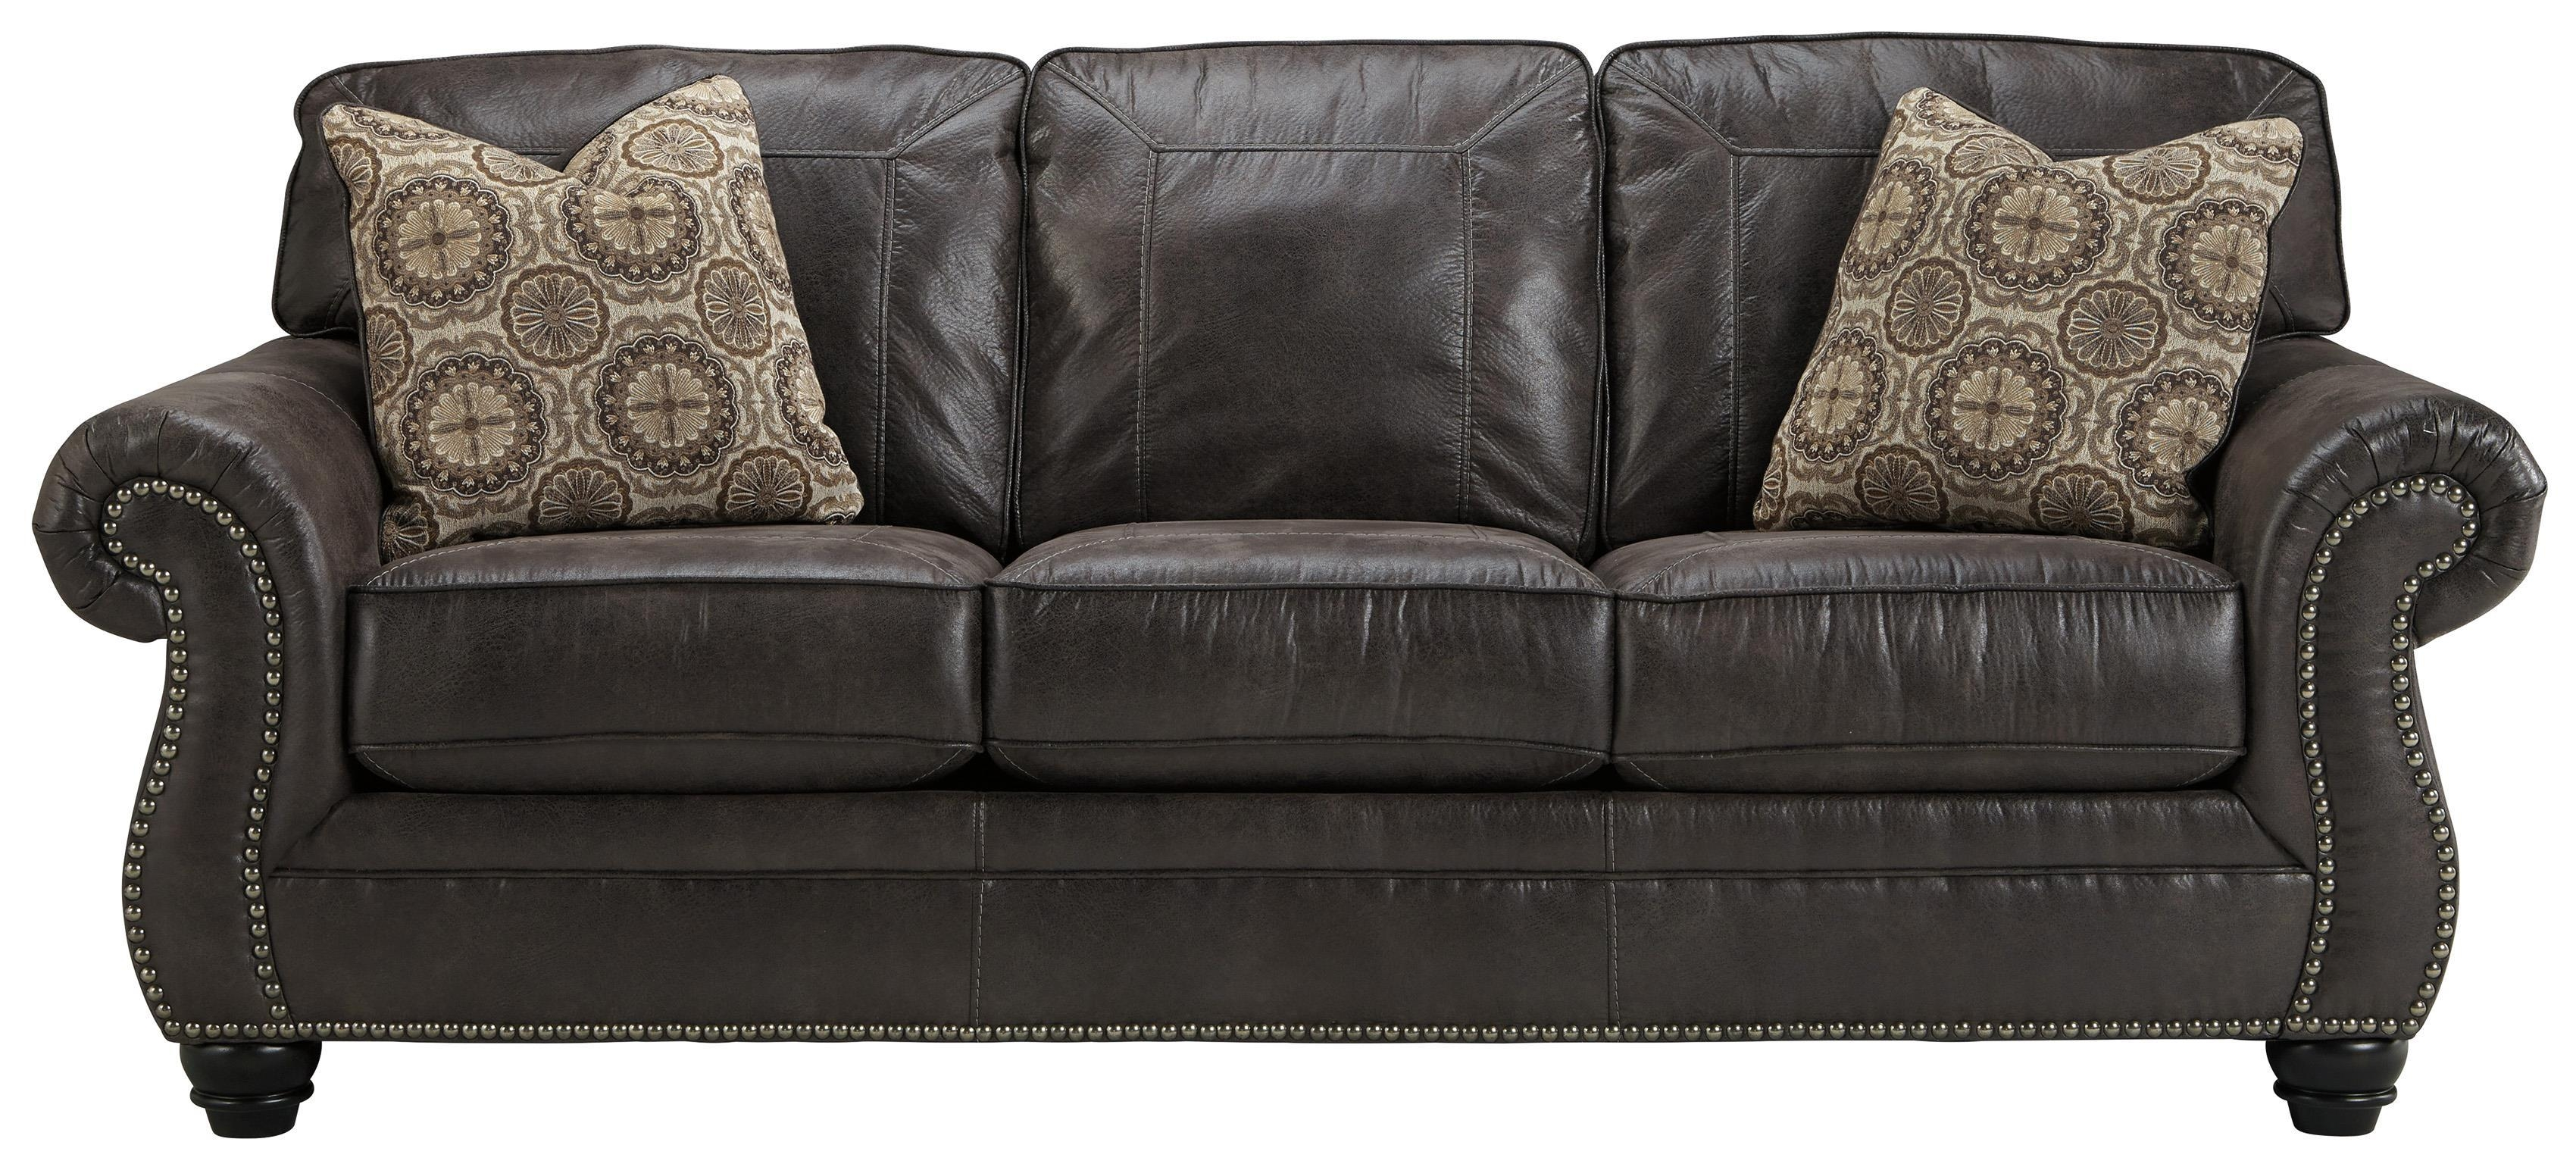 Featured Image of Benchcraft Leather Sofas